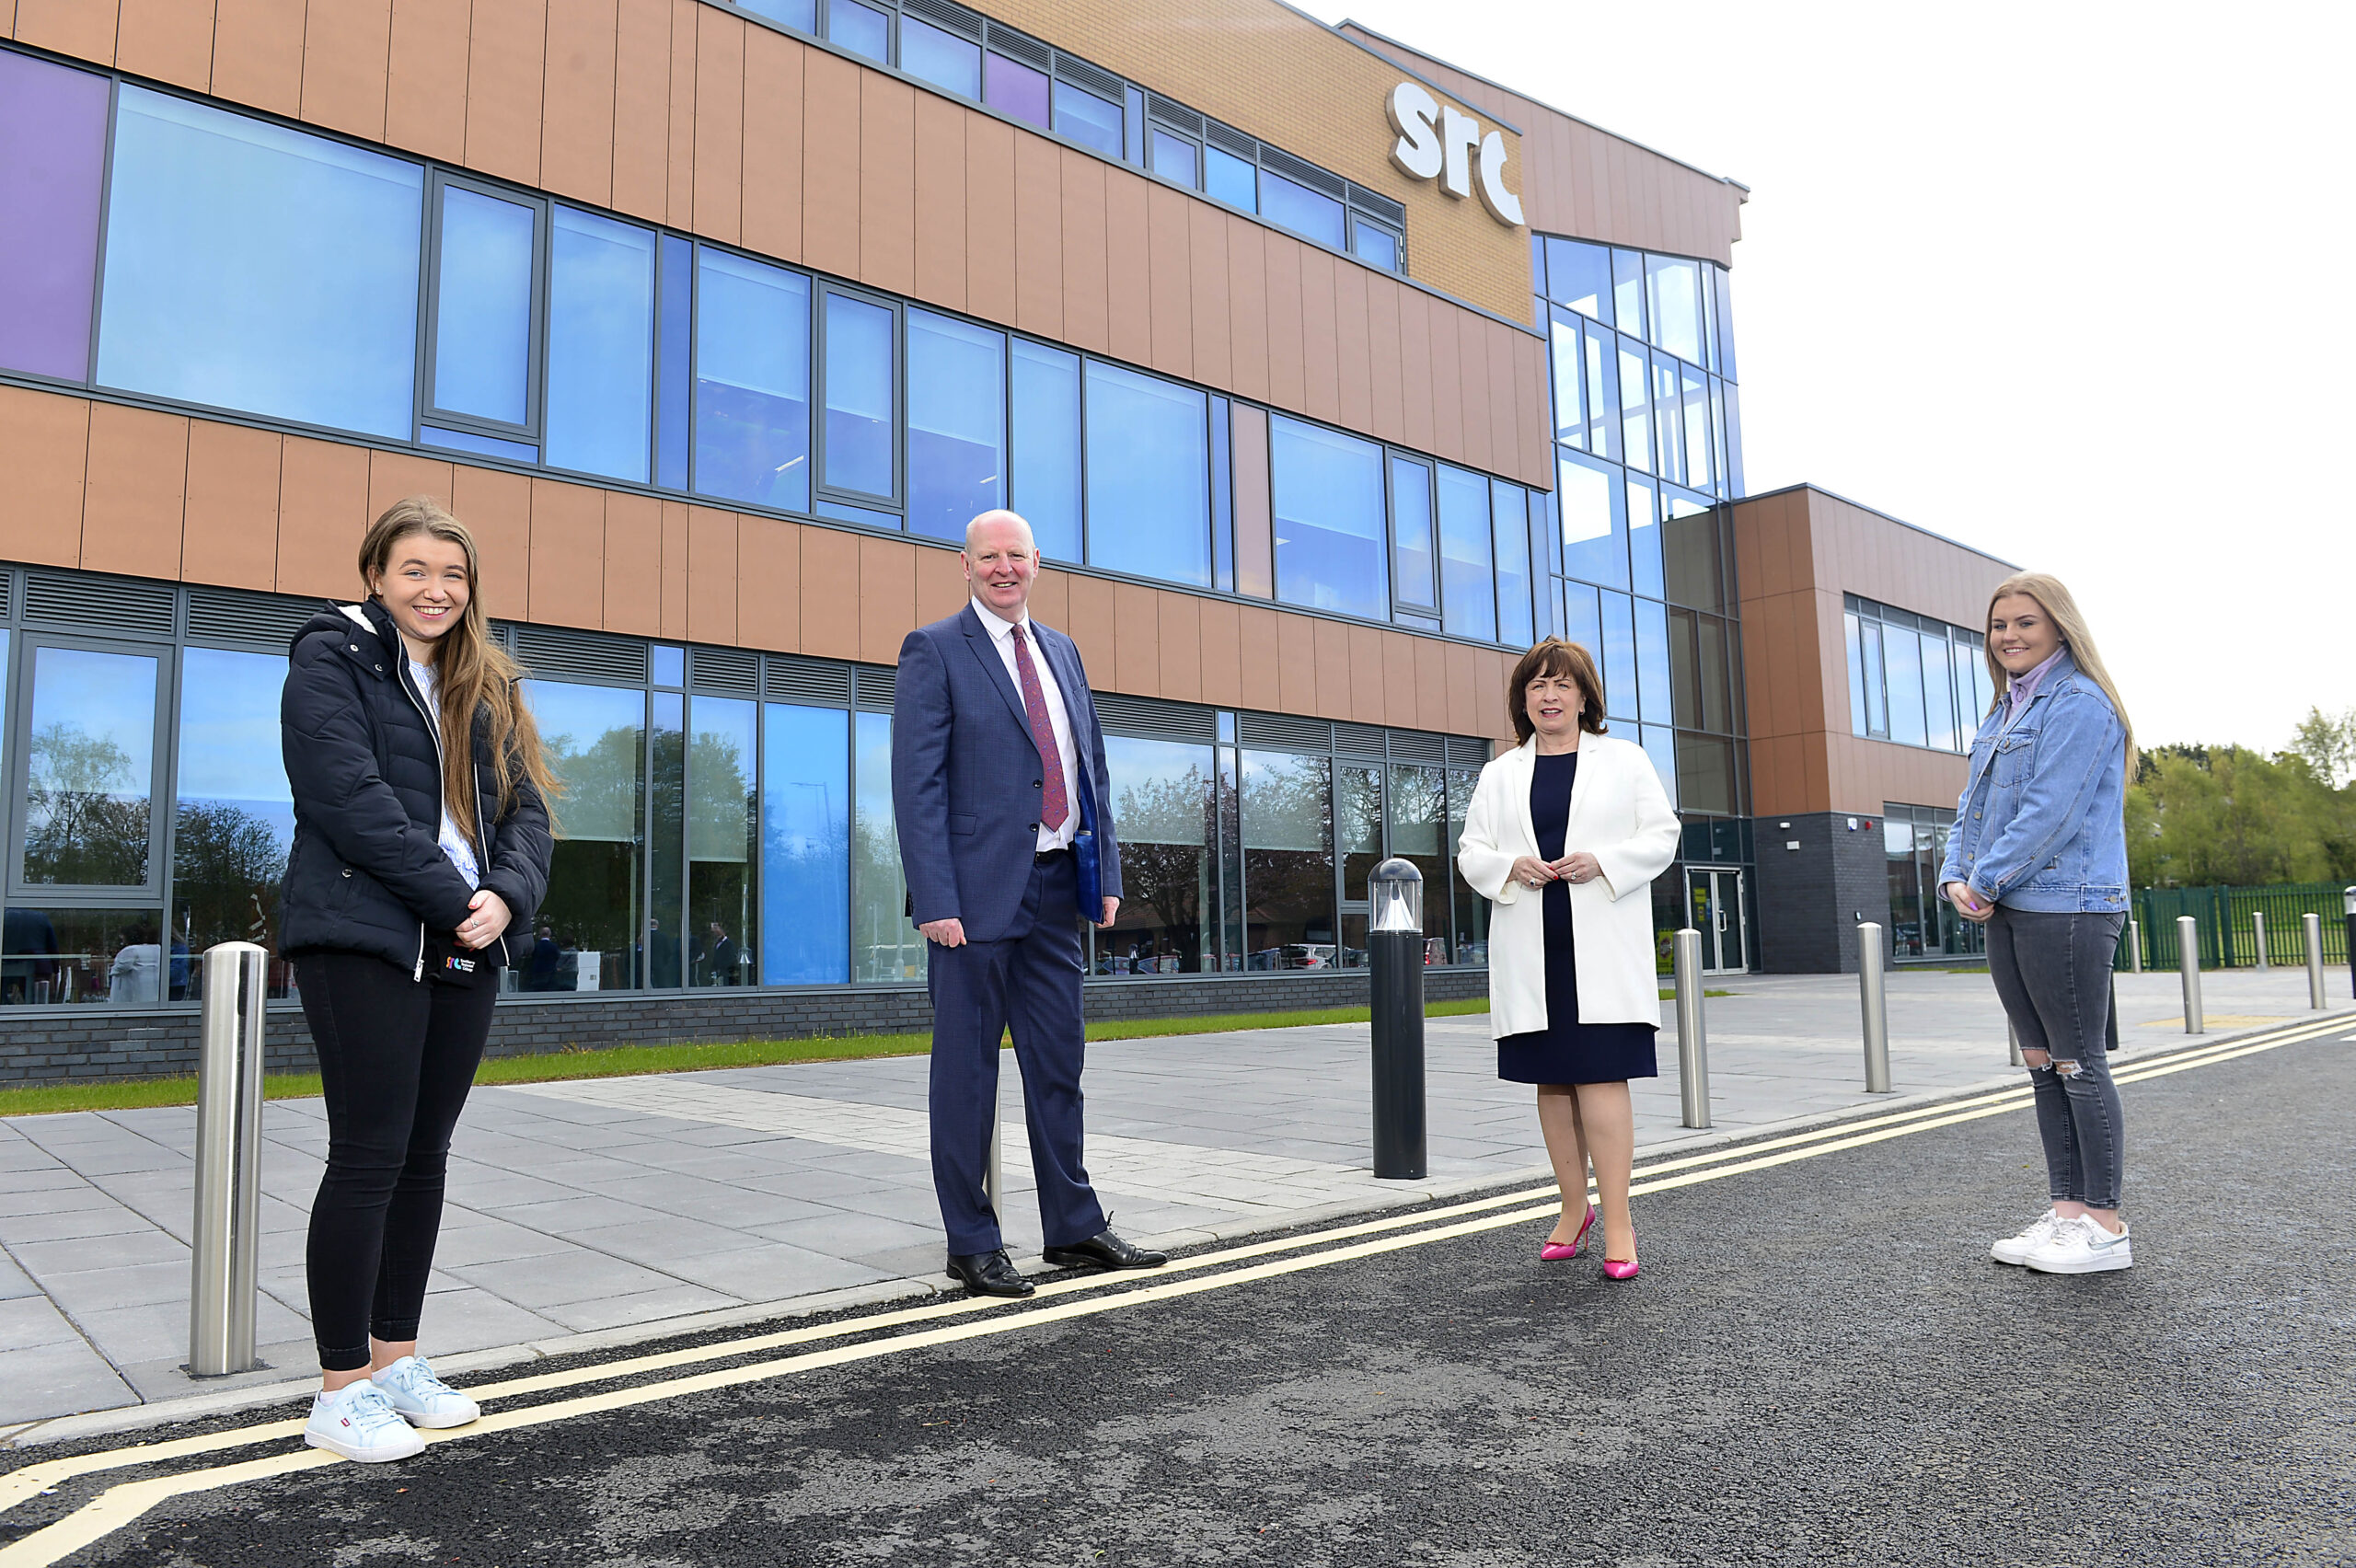 SRC Banbridge - New £15m Banbridge campus for Southern Regional College officially opened - Newry Times - newry ireland news